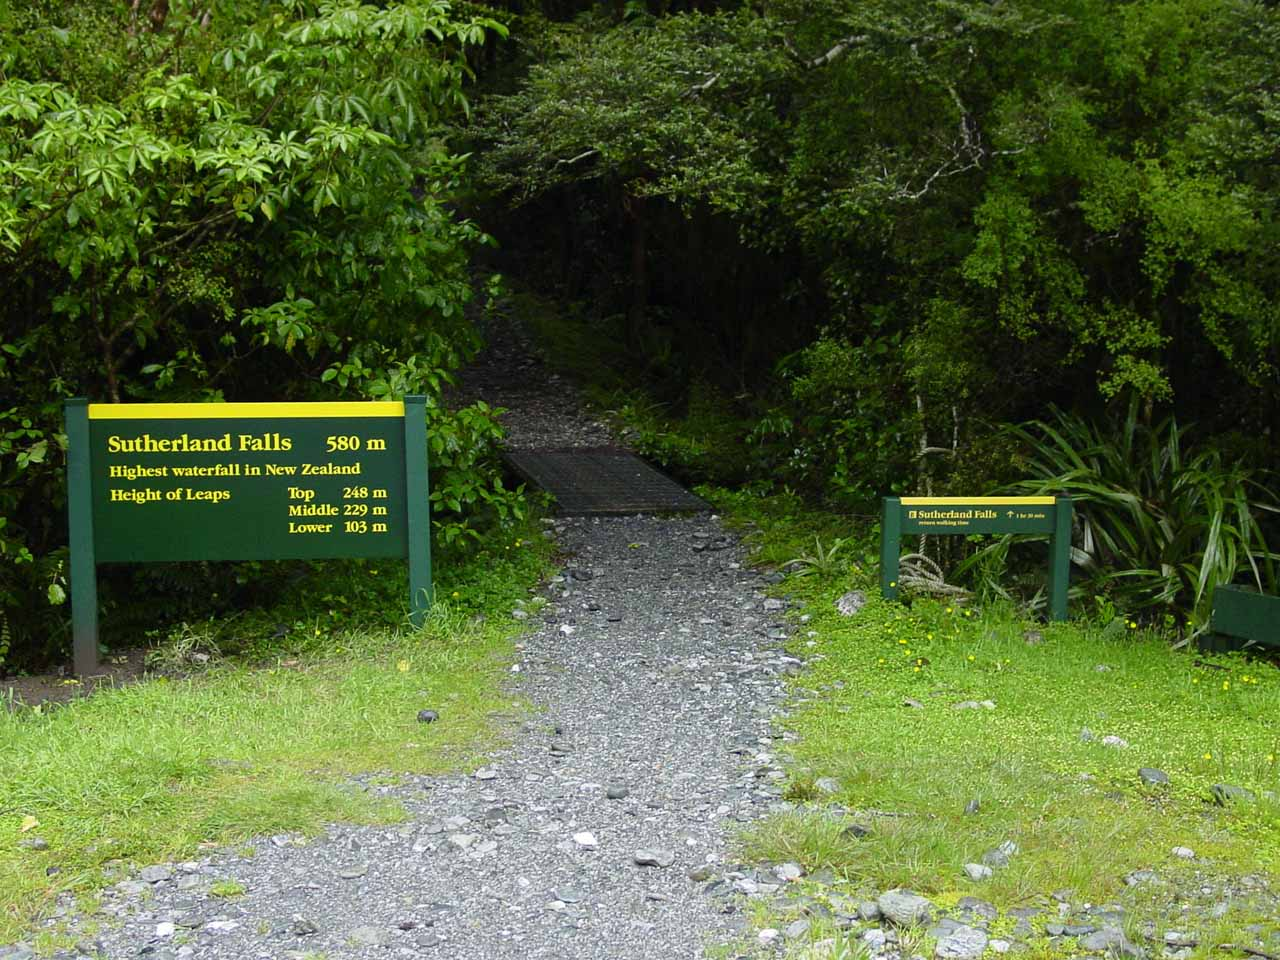 Signs at the start of the optional track to Sutherland Falls and back